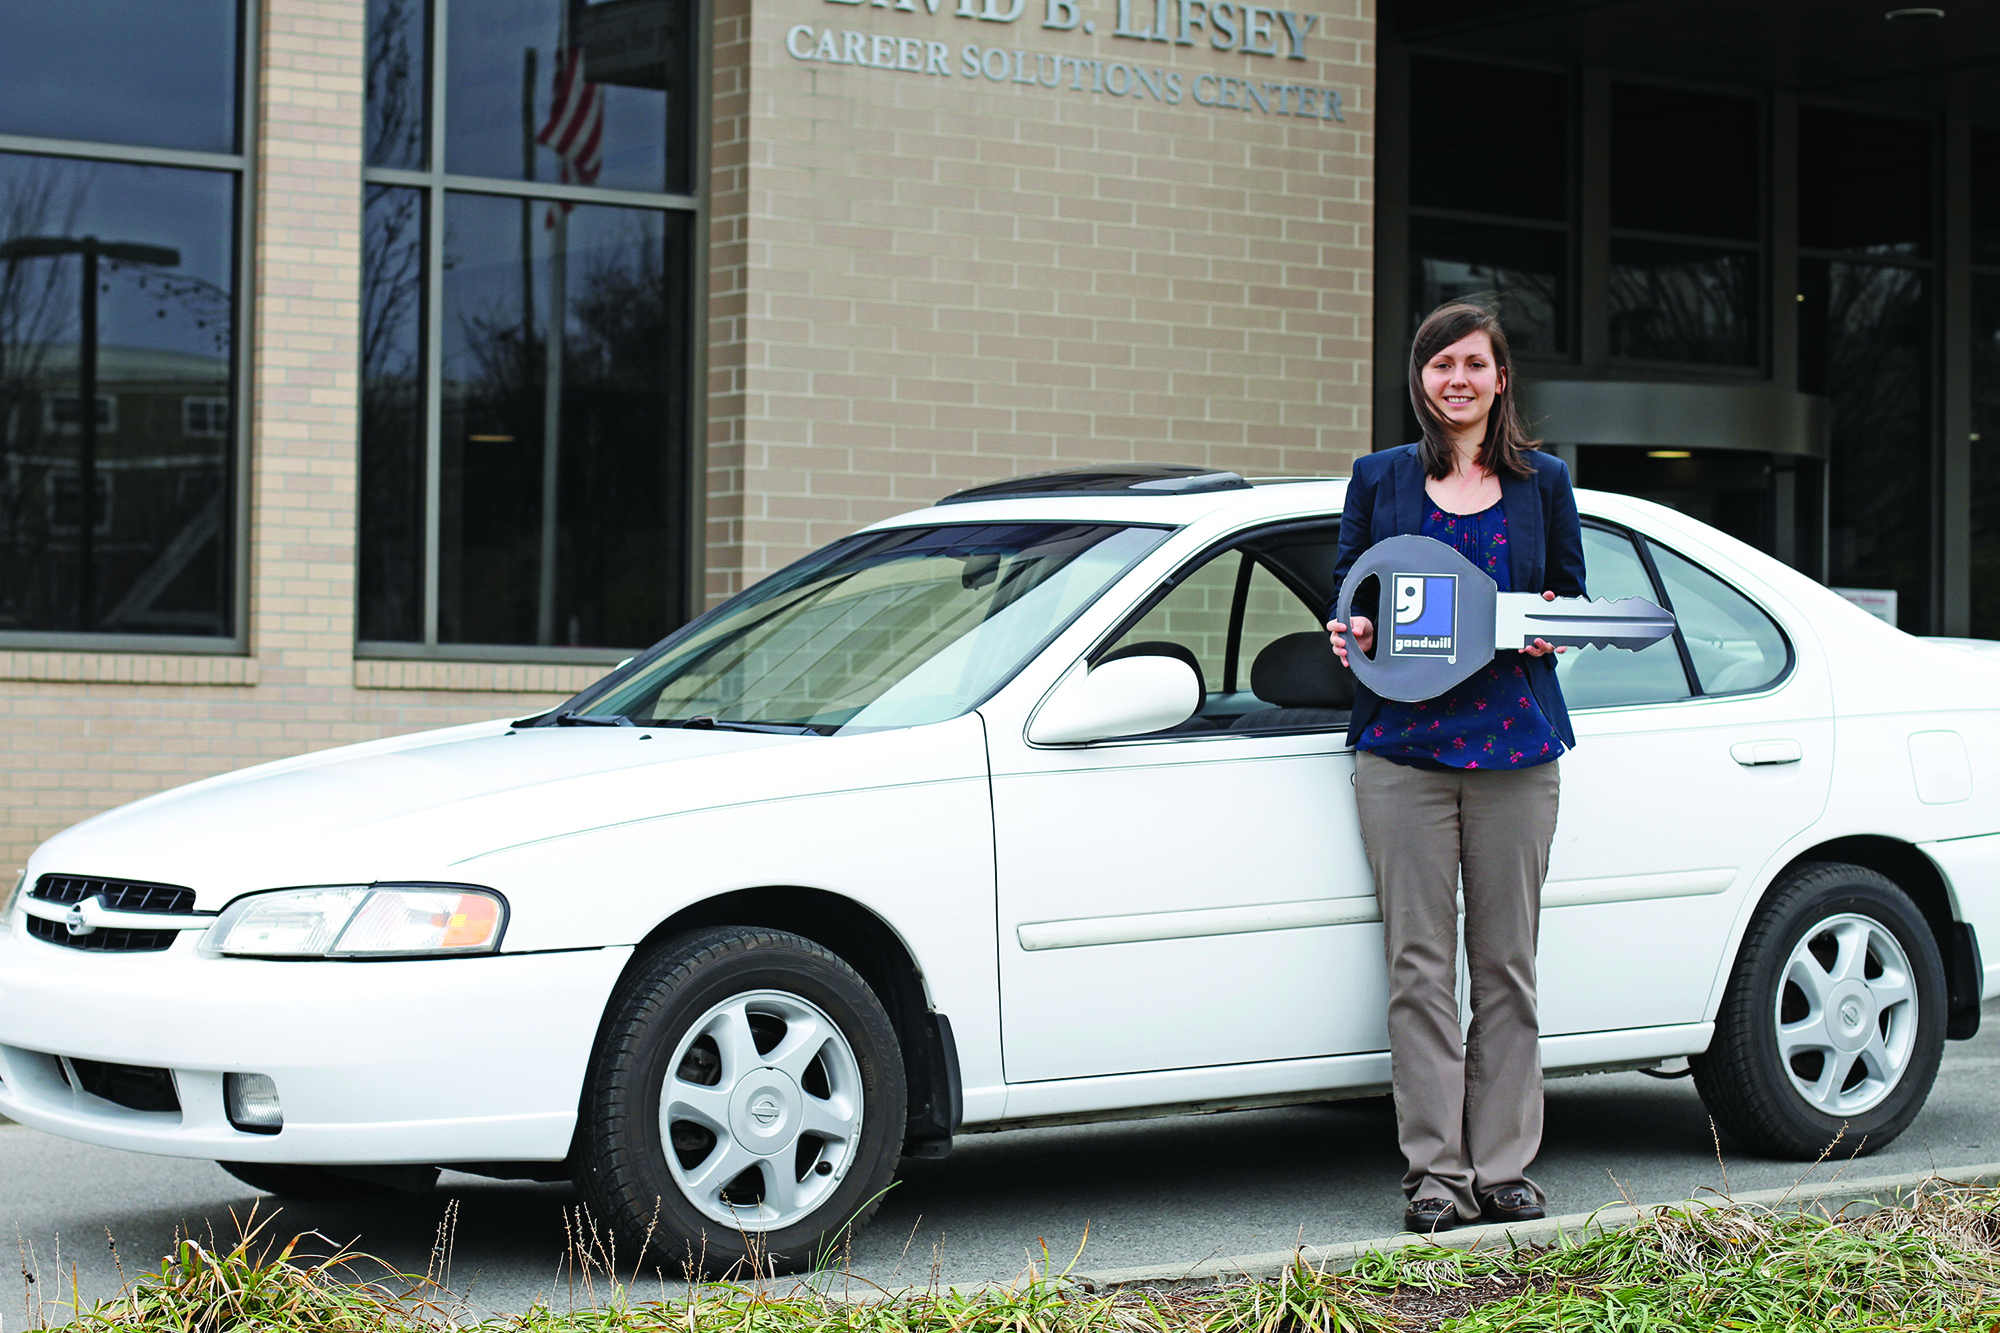 Smyrna Goodwill Store Assistant Manager Receives Vehicle